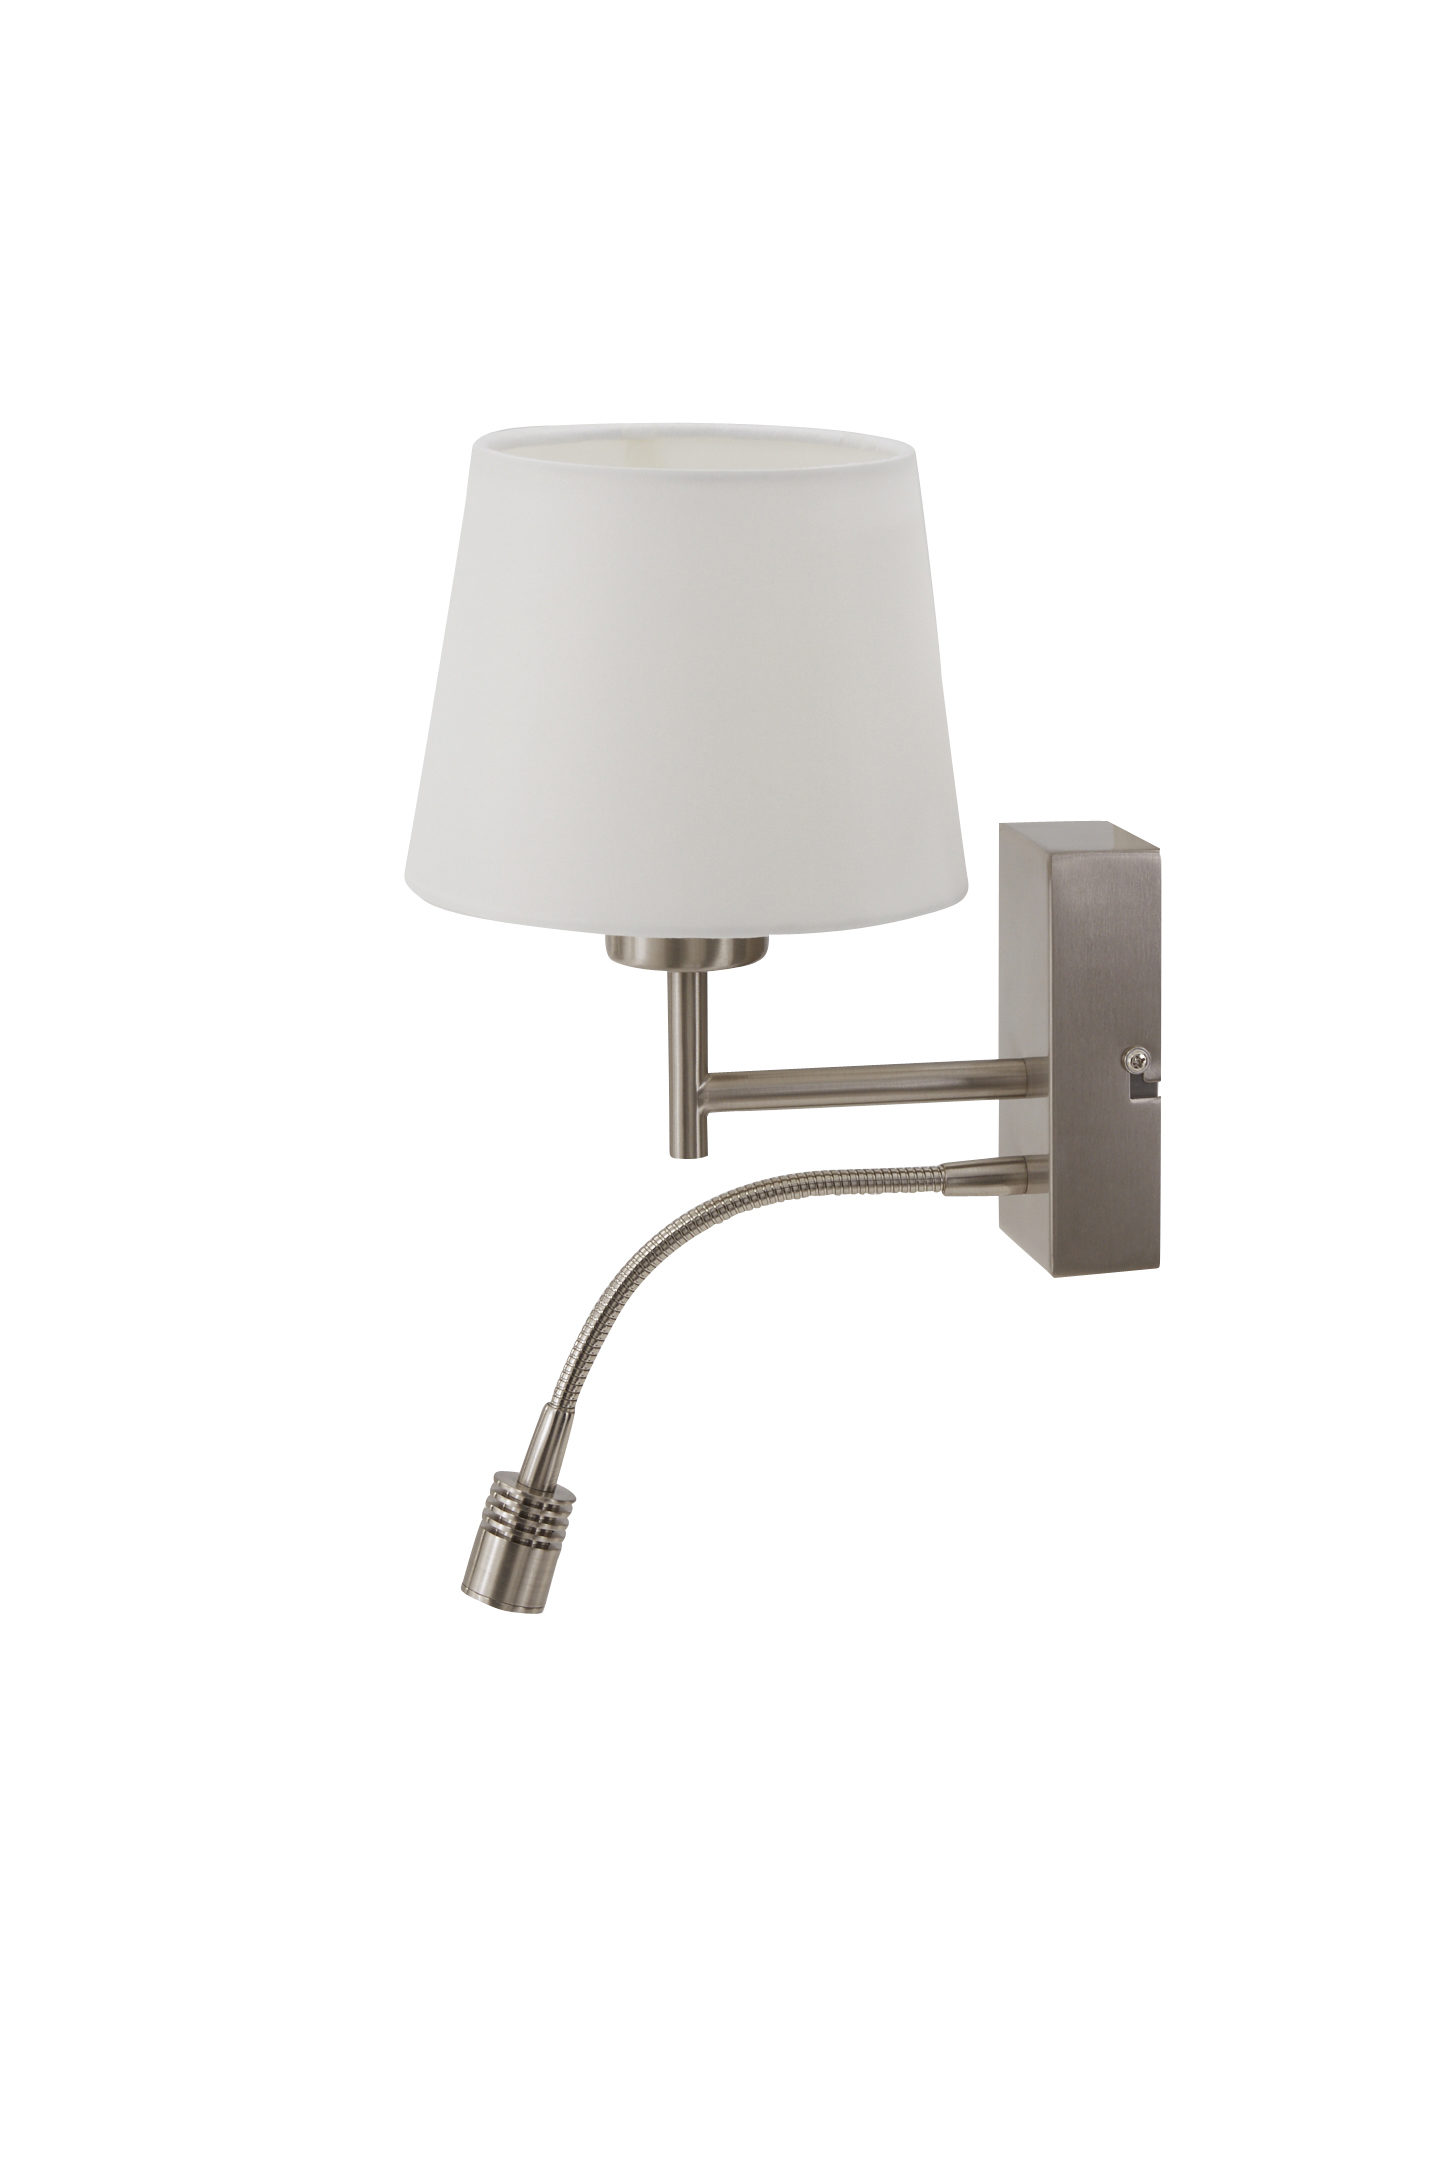 Chintz Sessel Interliving Leuchten Serie 9301 Wandleuchte Nickel Matt